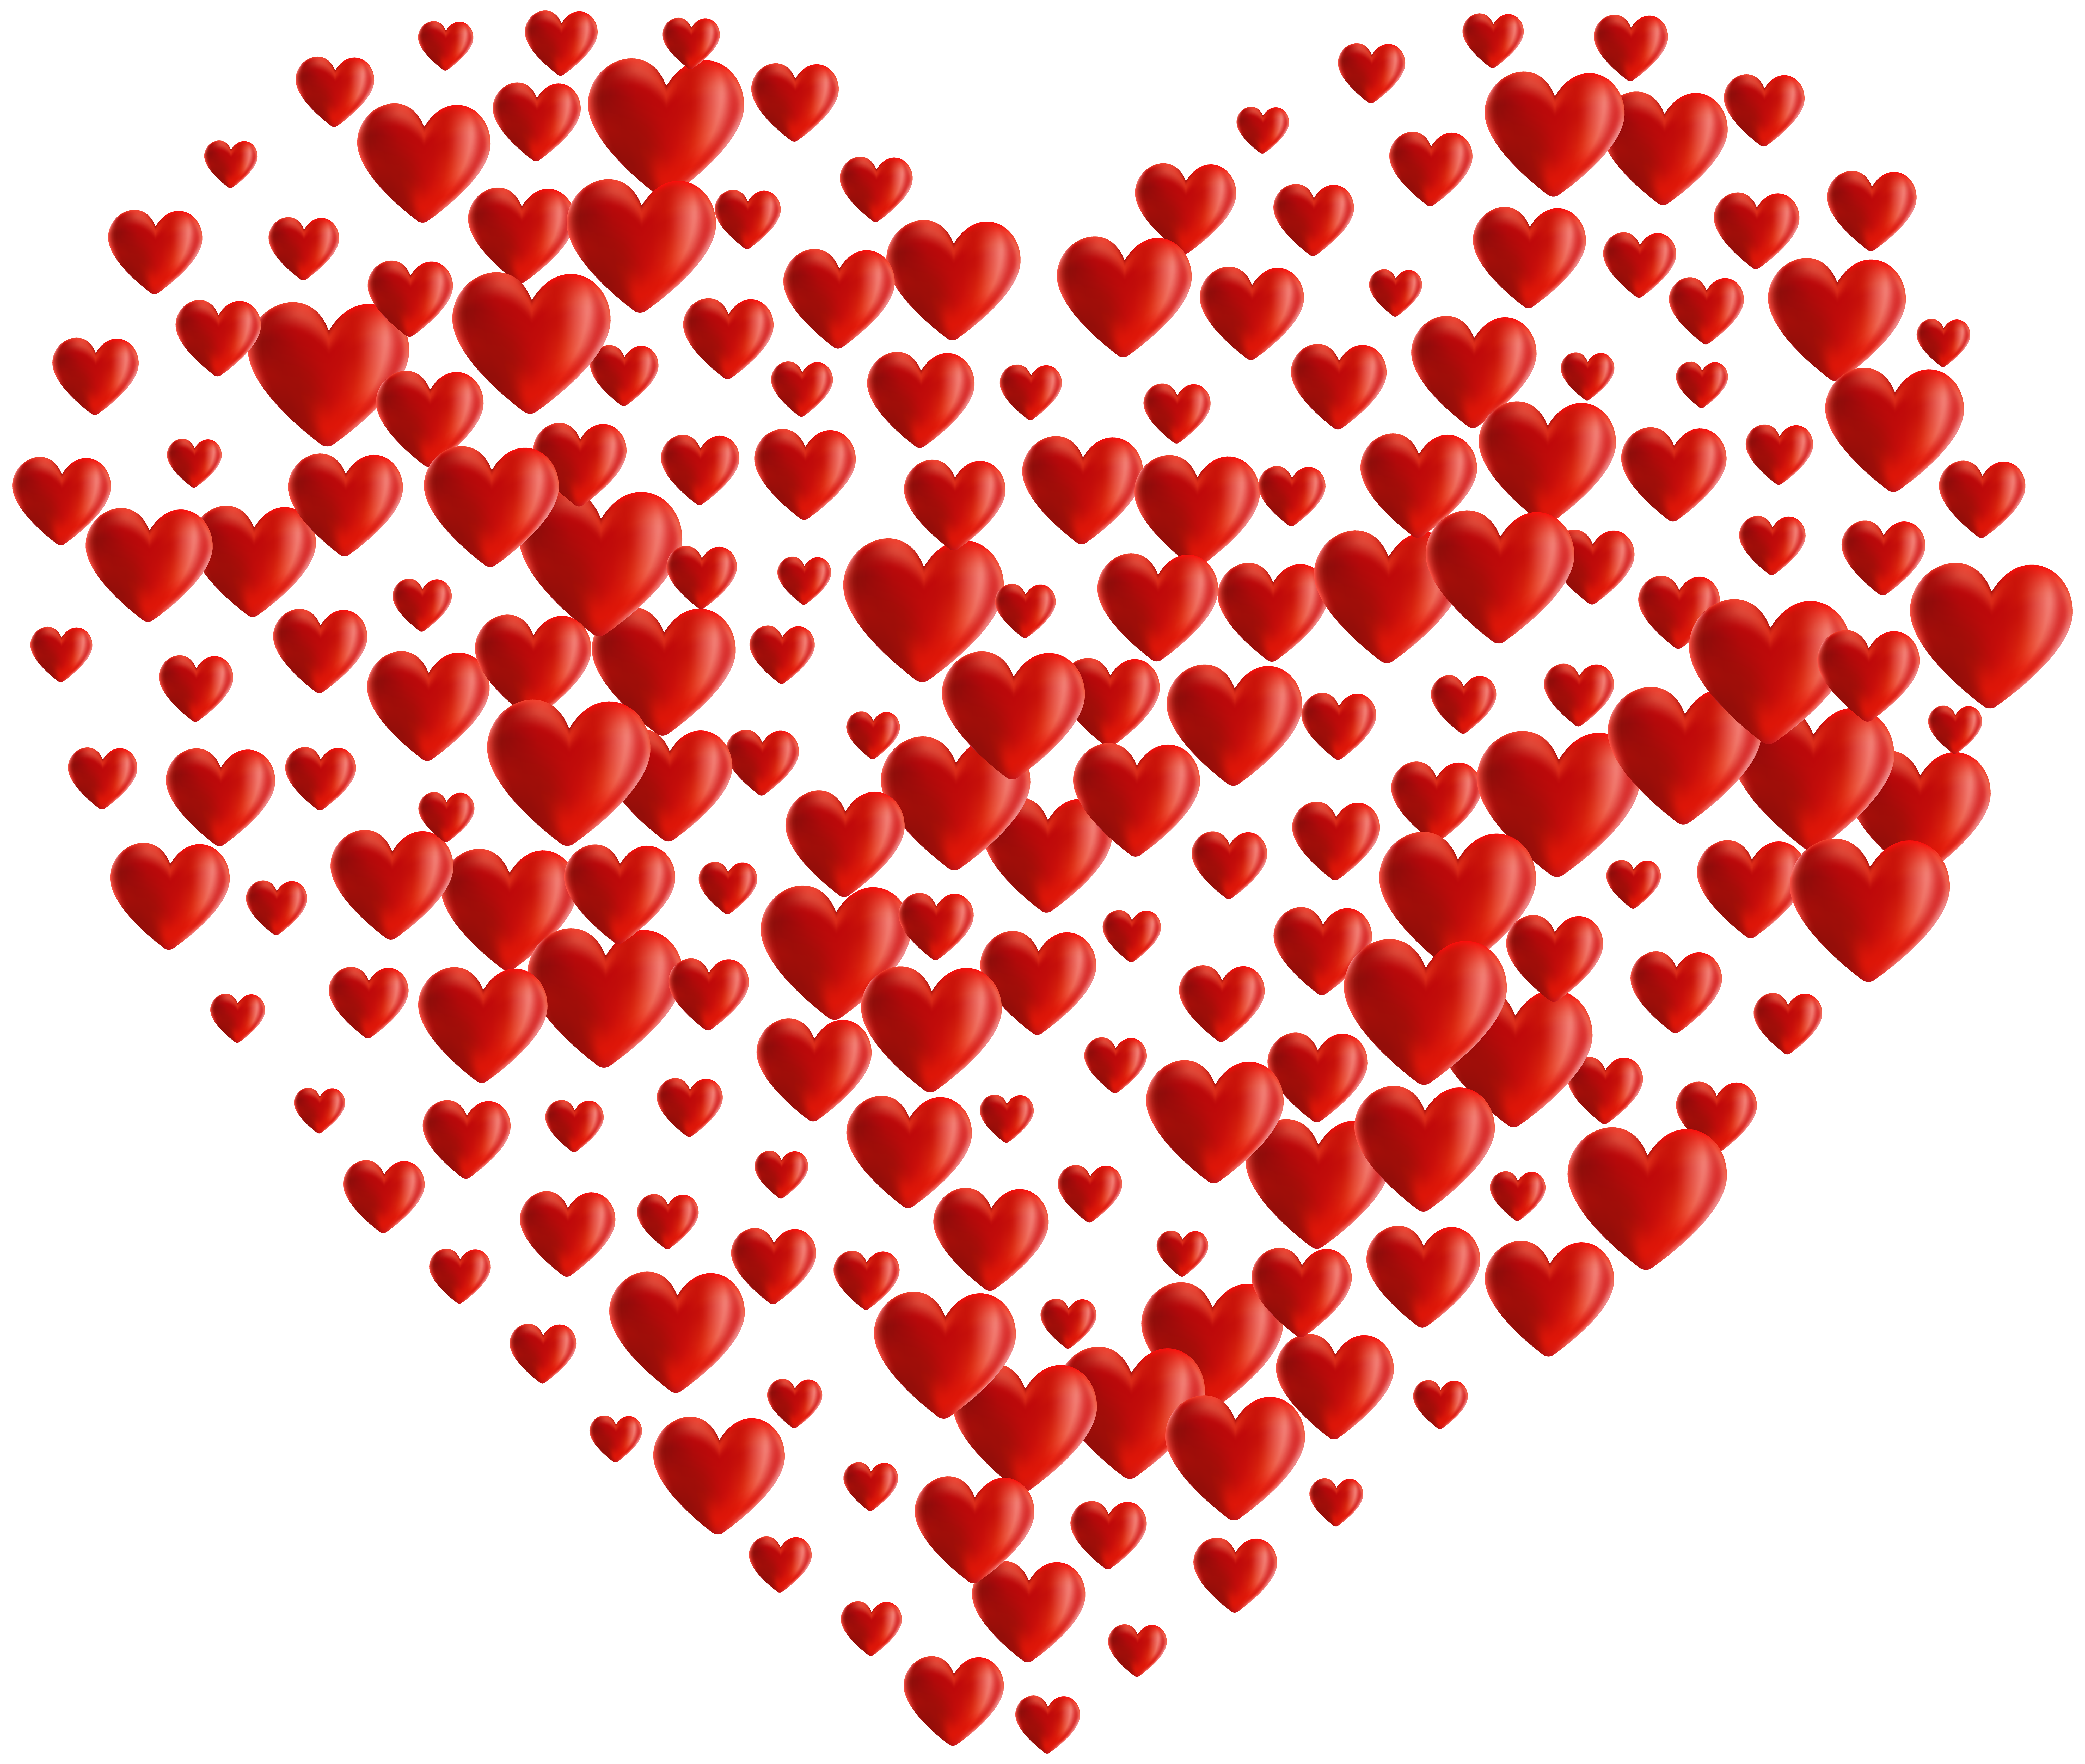 Heart of transparent png. Clipart hearts halloween